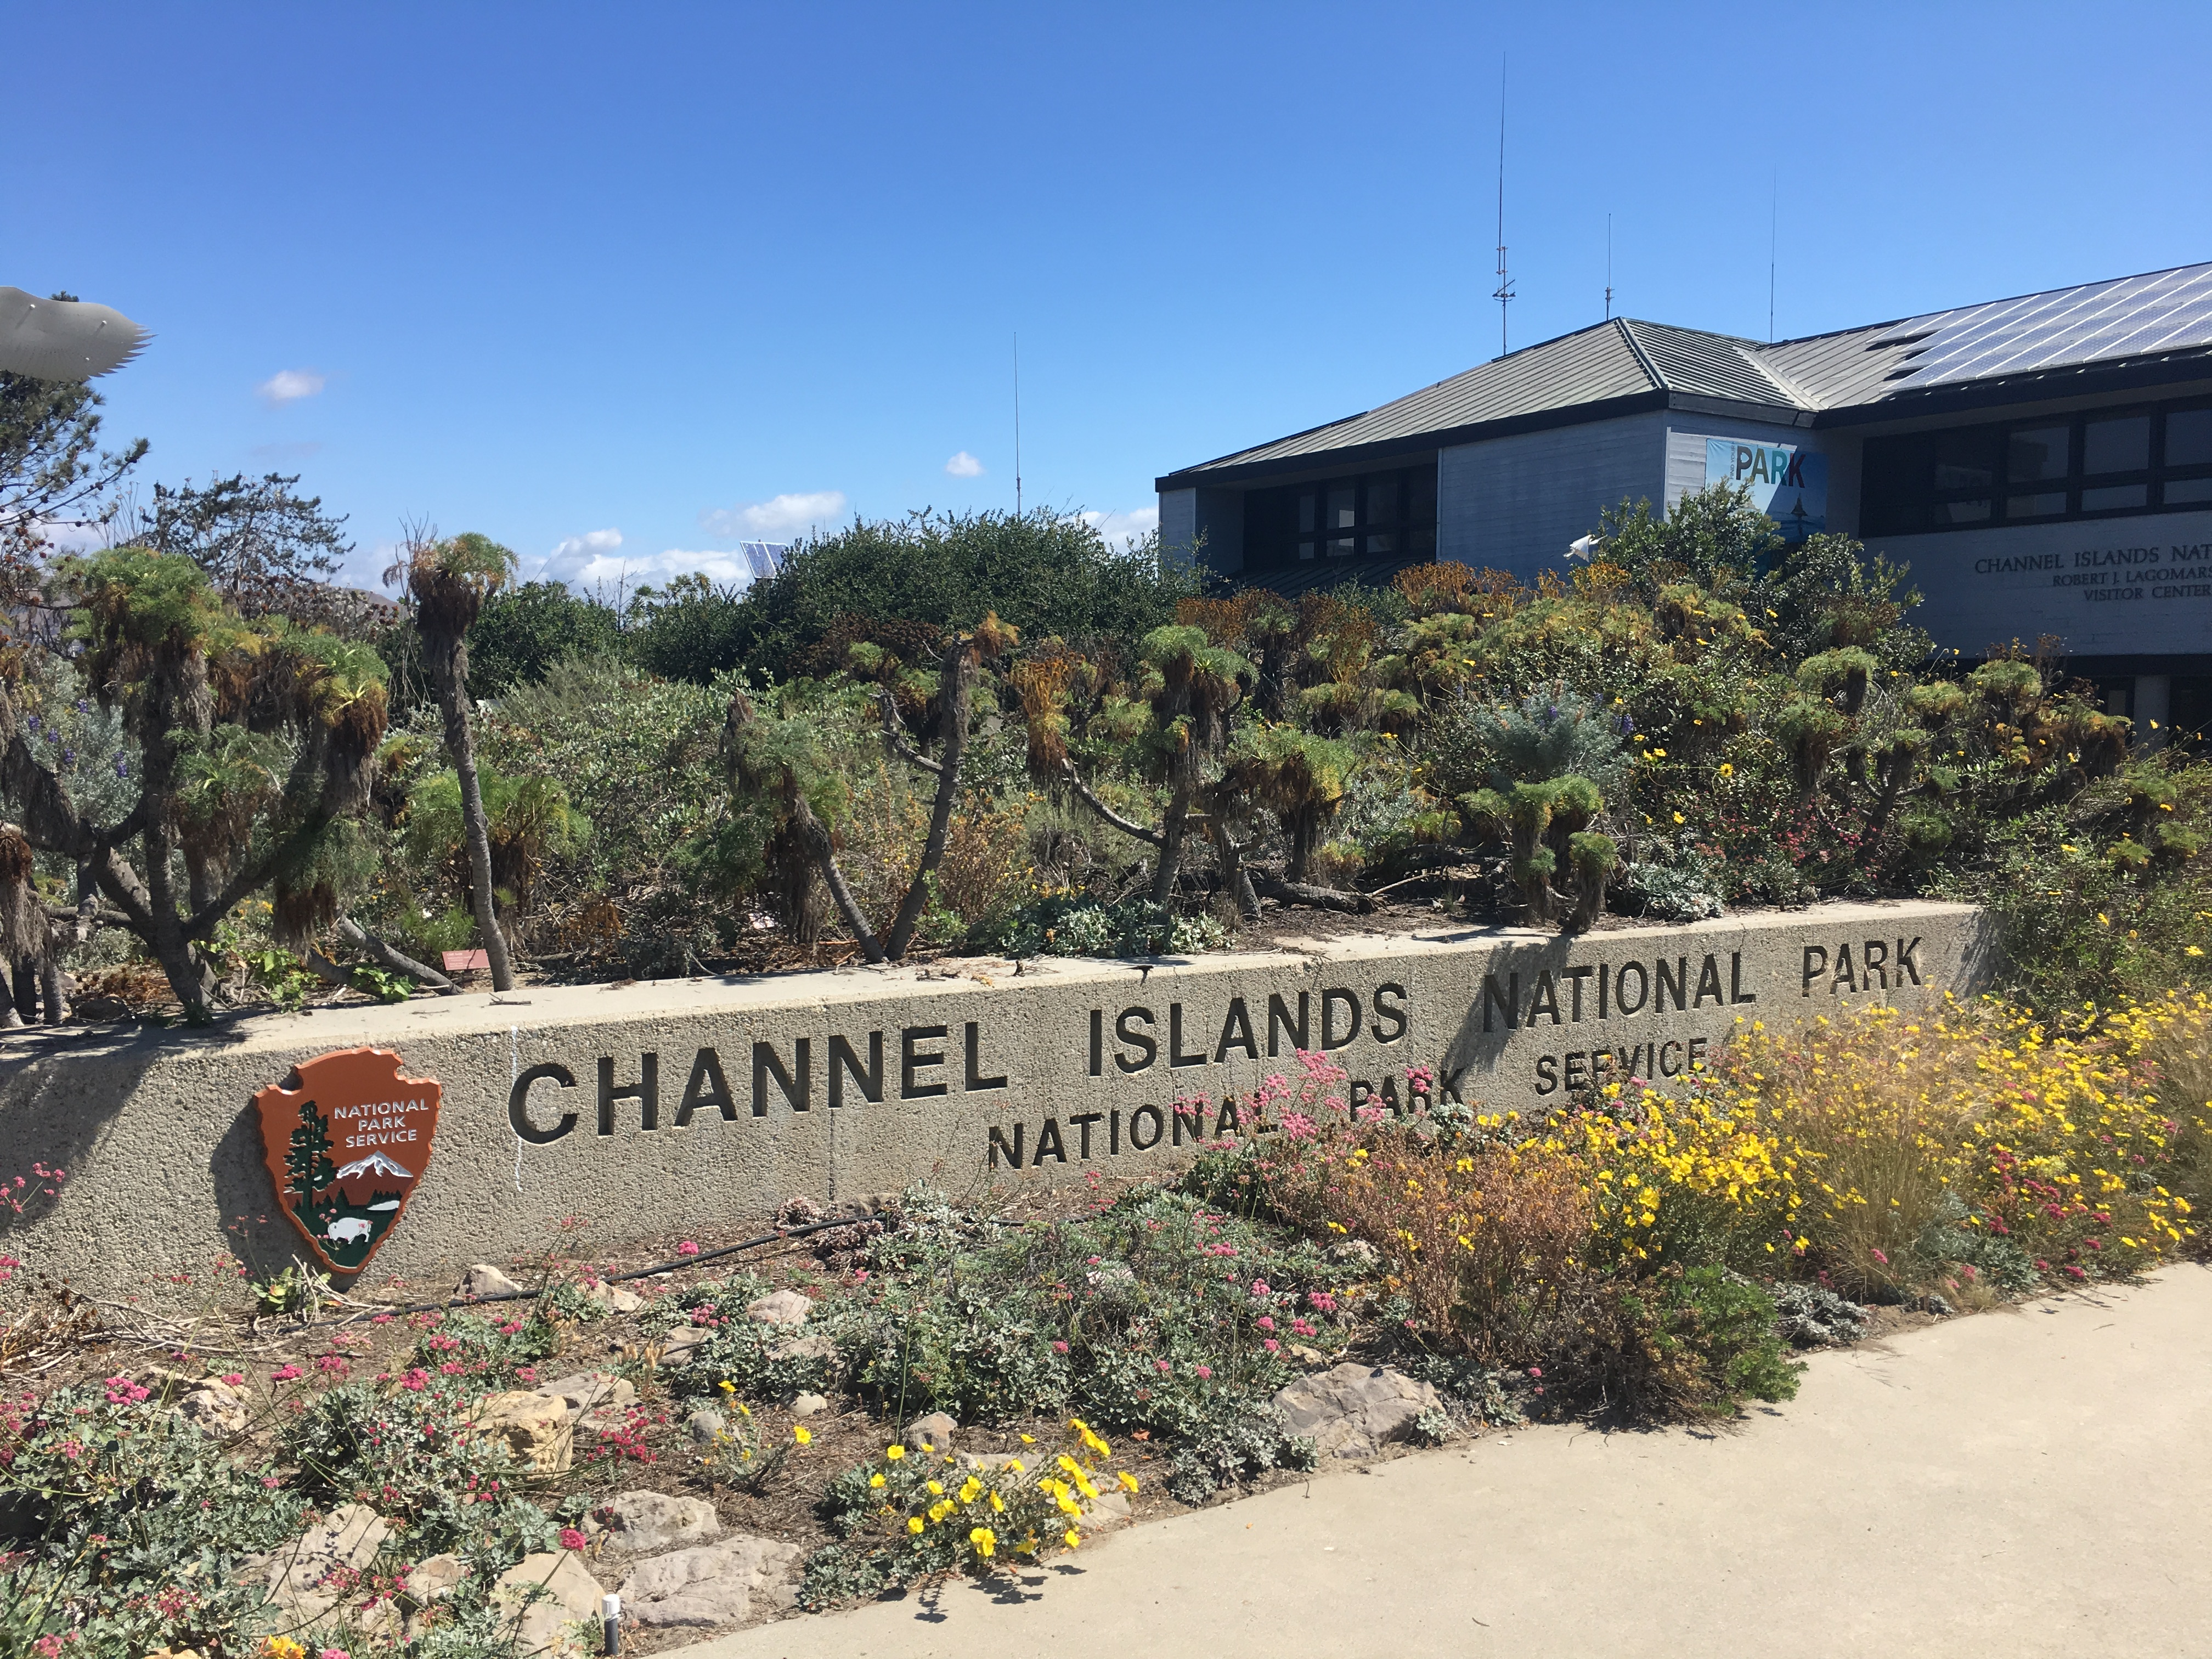 Channel Islands National Park Accommodations